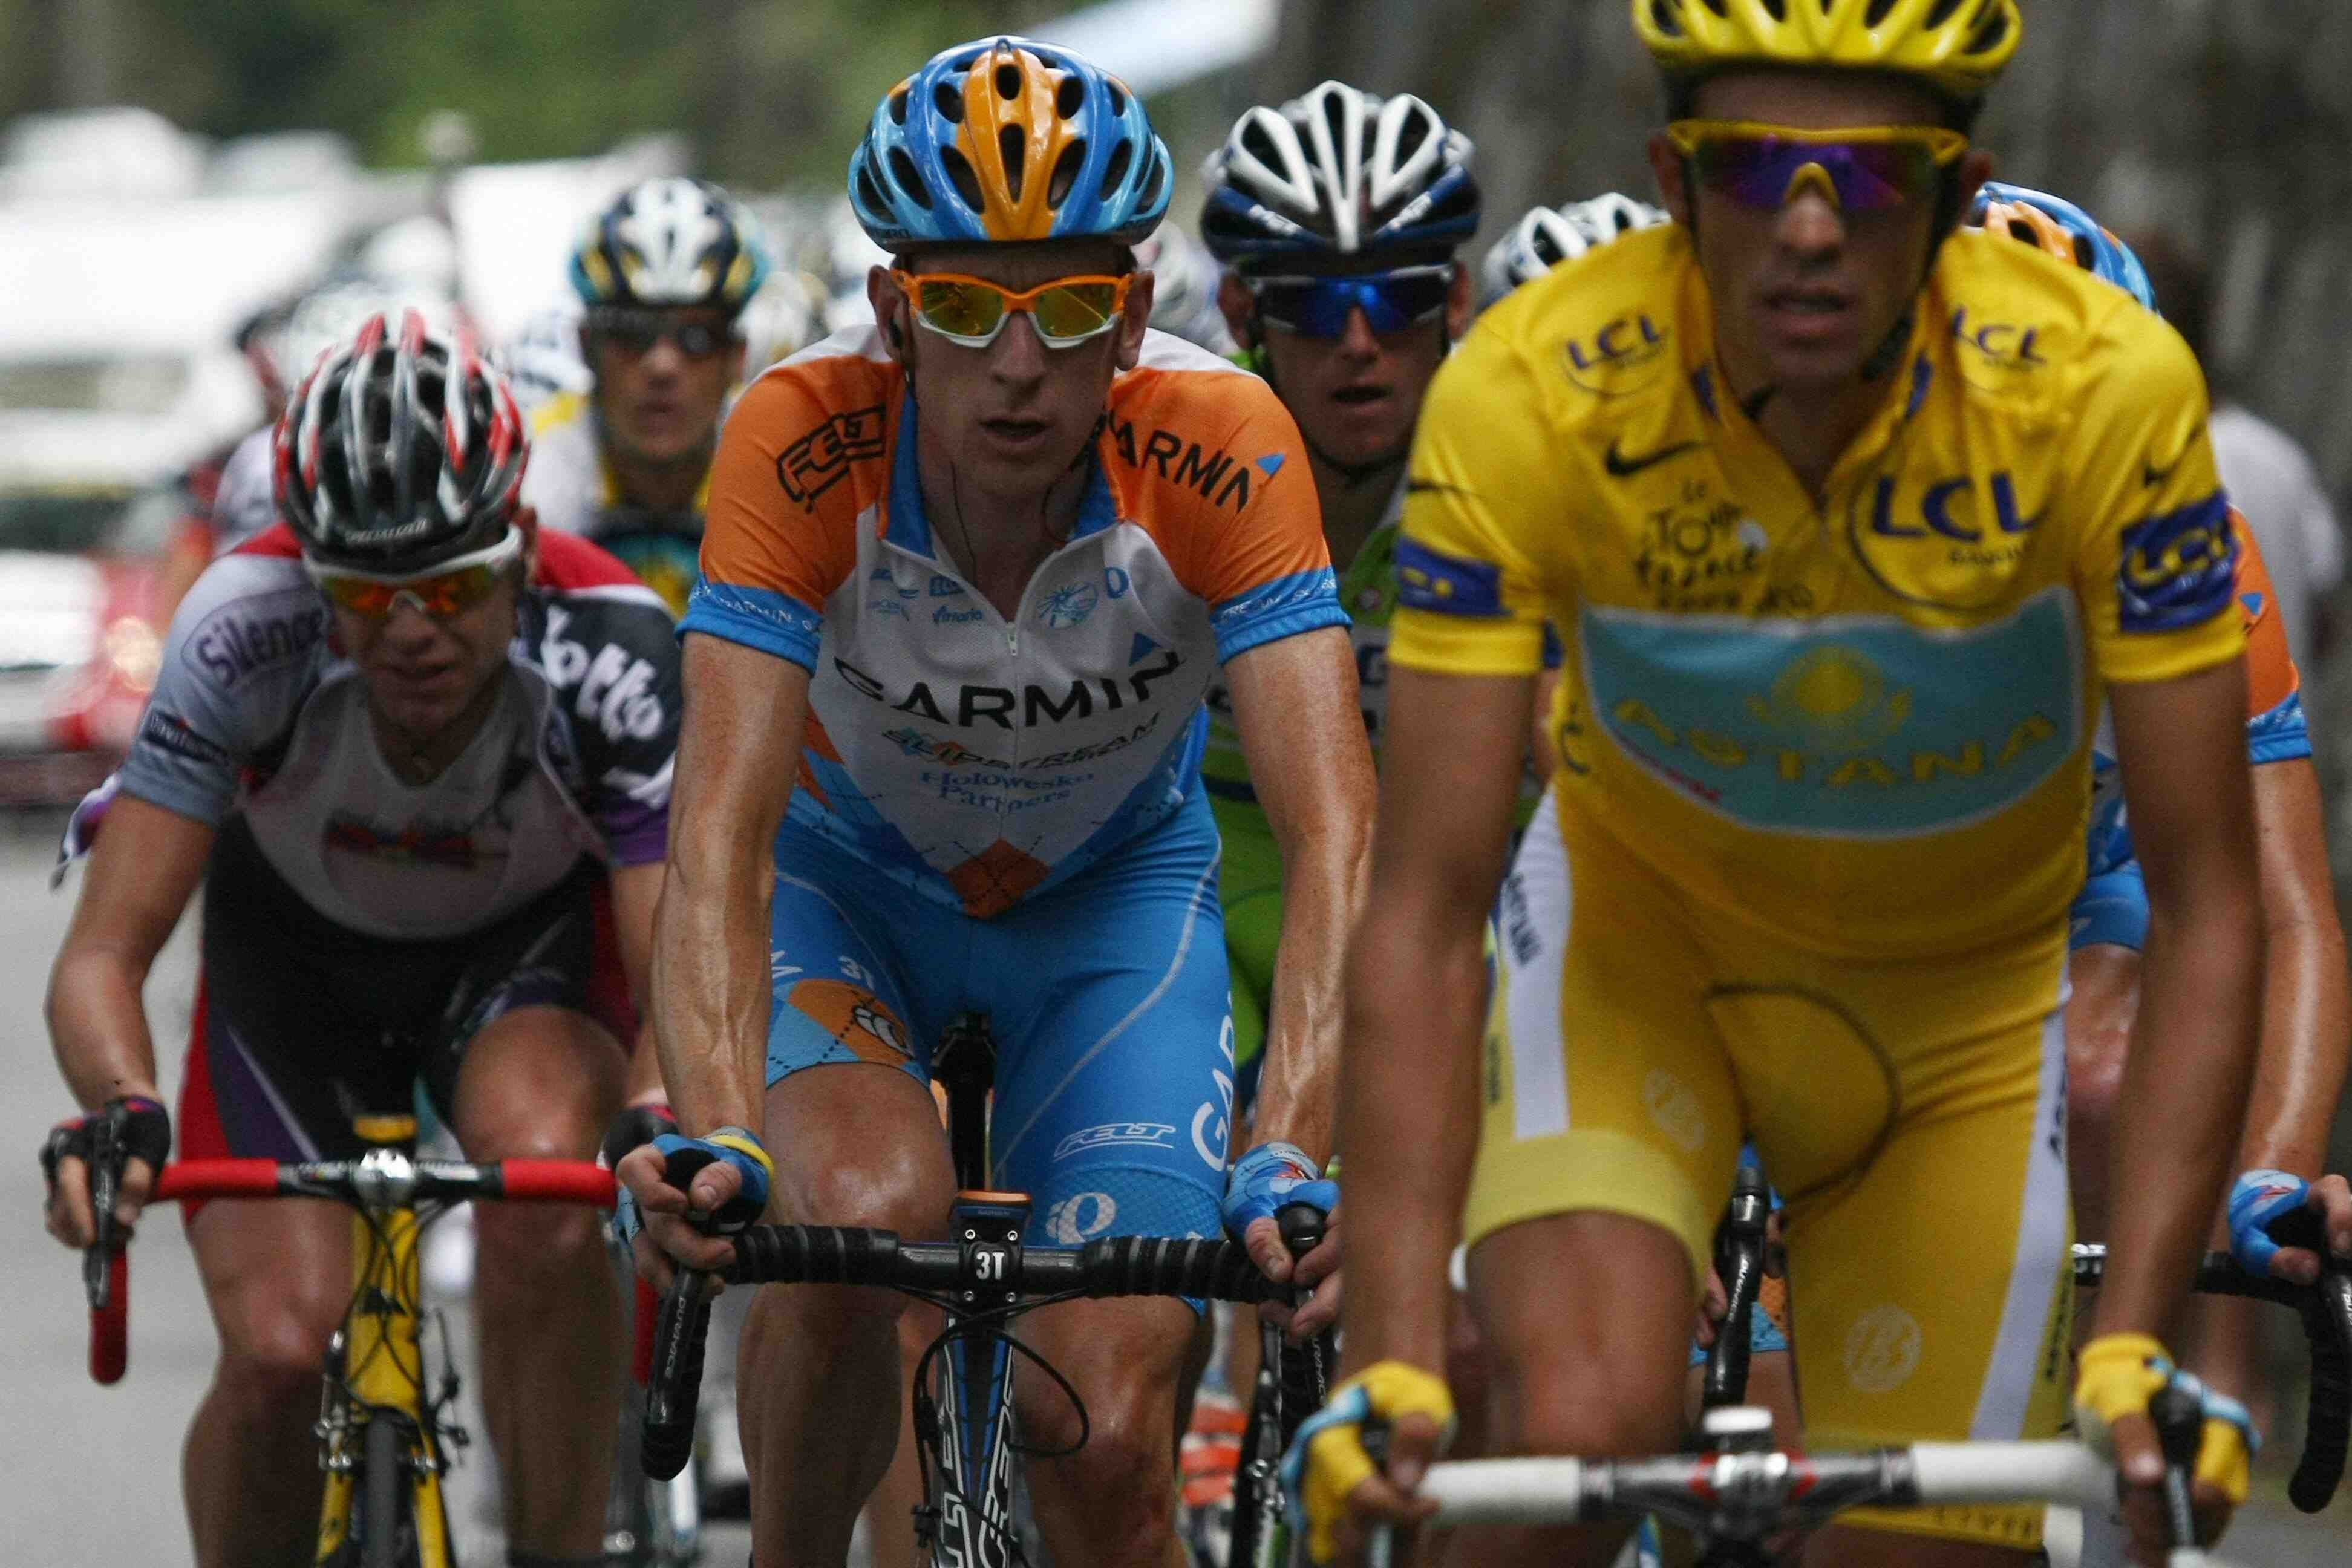 Cadel Evans (L) suffers mightily during stage 16 of the 2009 Tour de France, as the baton is passed to Garmin's Bradley Wiggins and Astana's Alberto Contador.